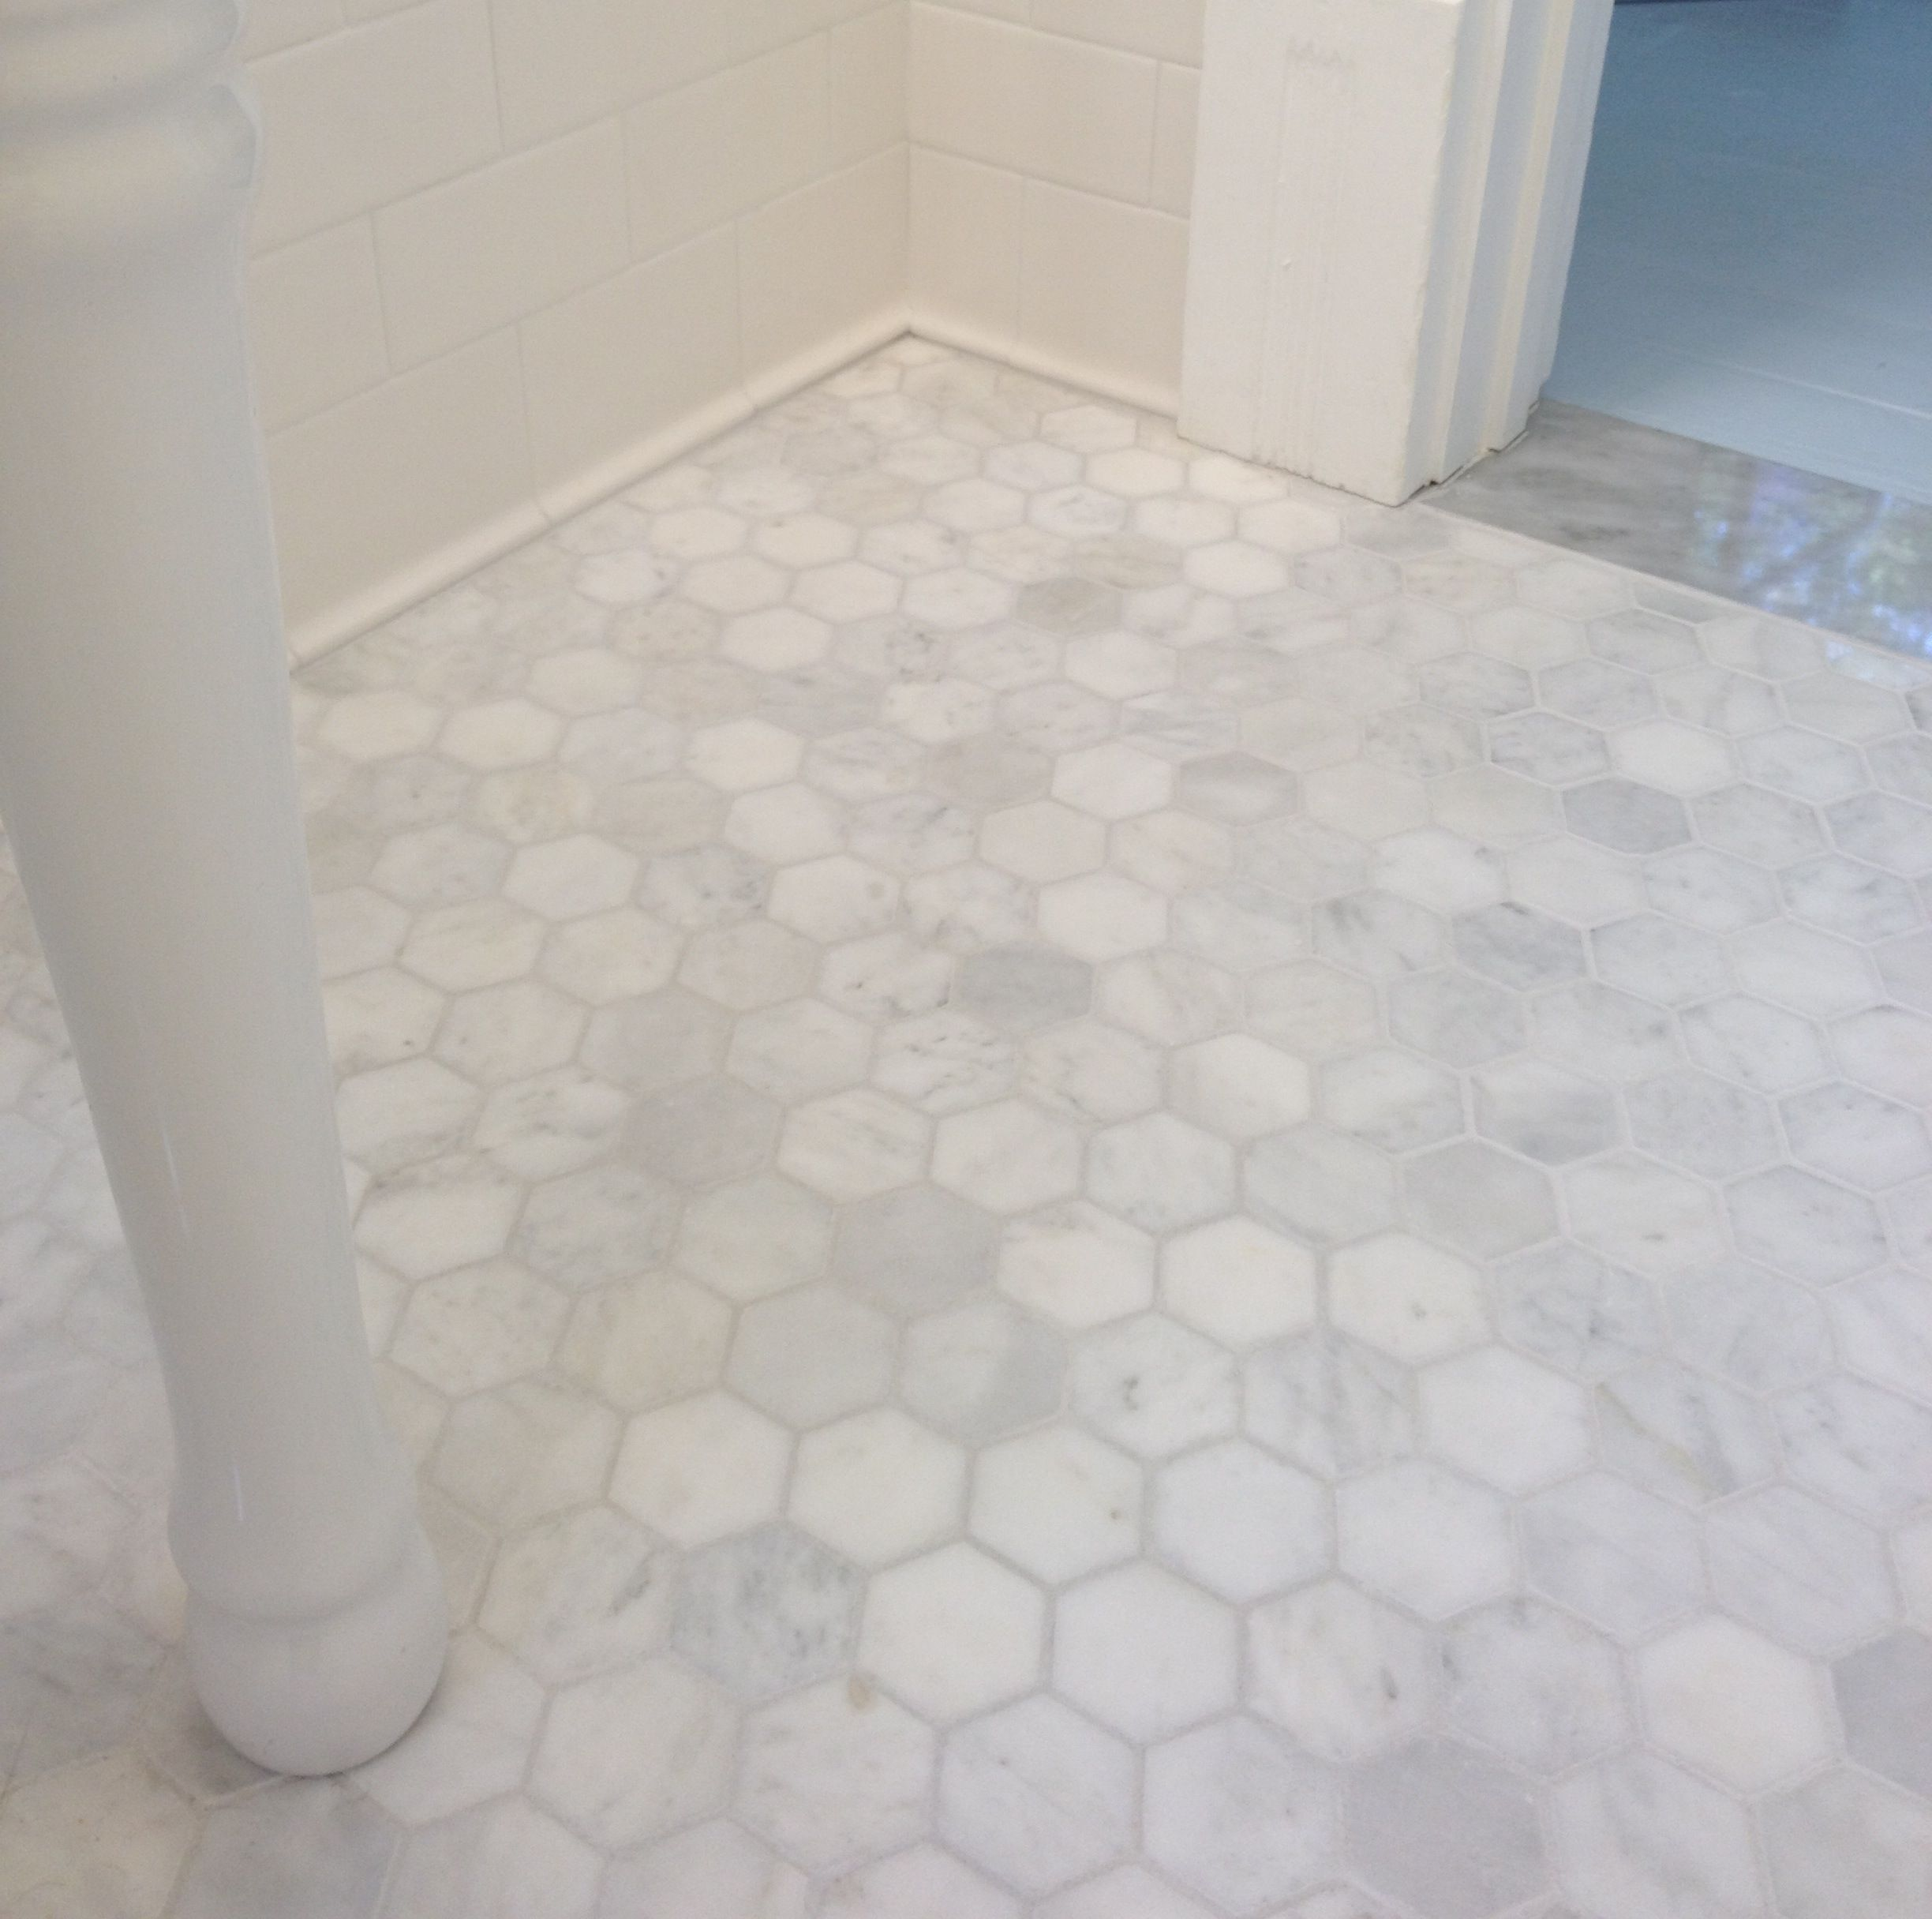 Marble Hexagon Tile, Grey Grout, Subway Tile, Porcelain Console Sink. Grey  Carrara